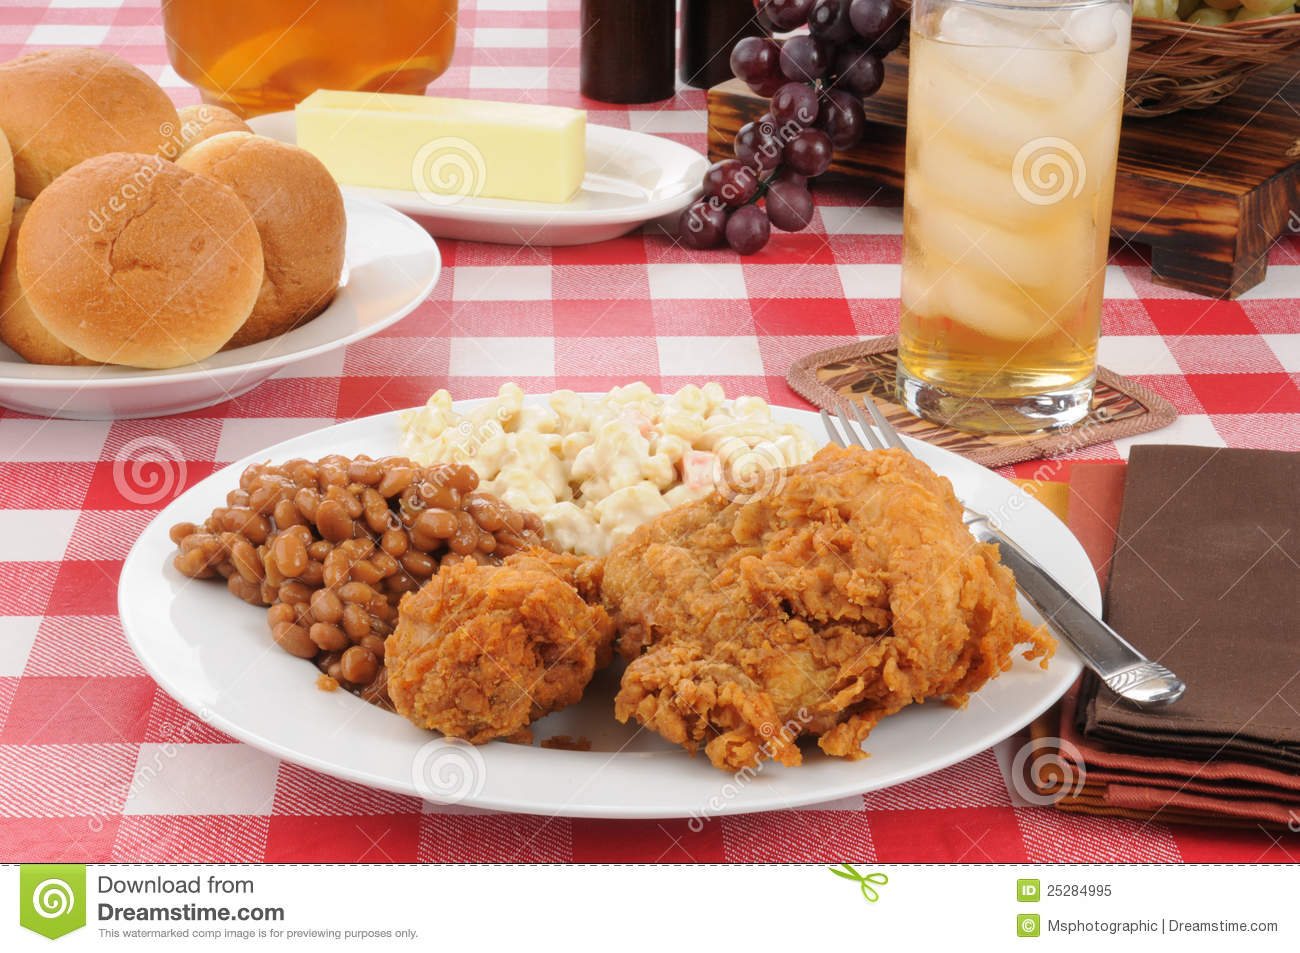 Plate Of Fried Chicken With Boston Baked Beans And Rolls On A Picnic